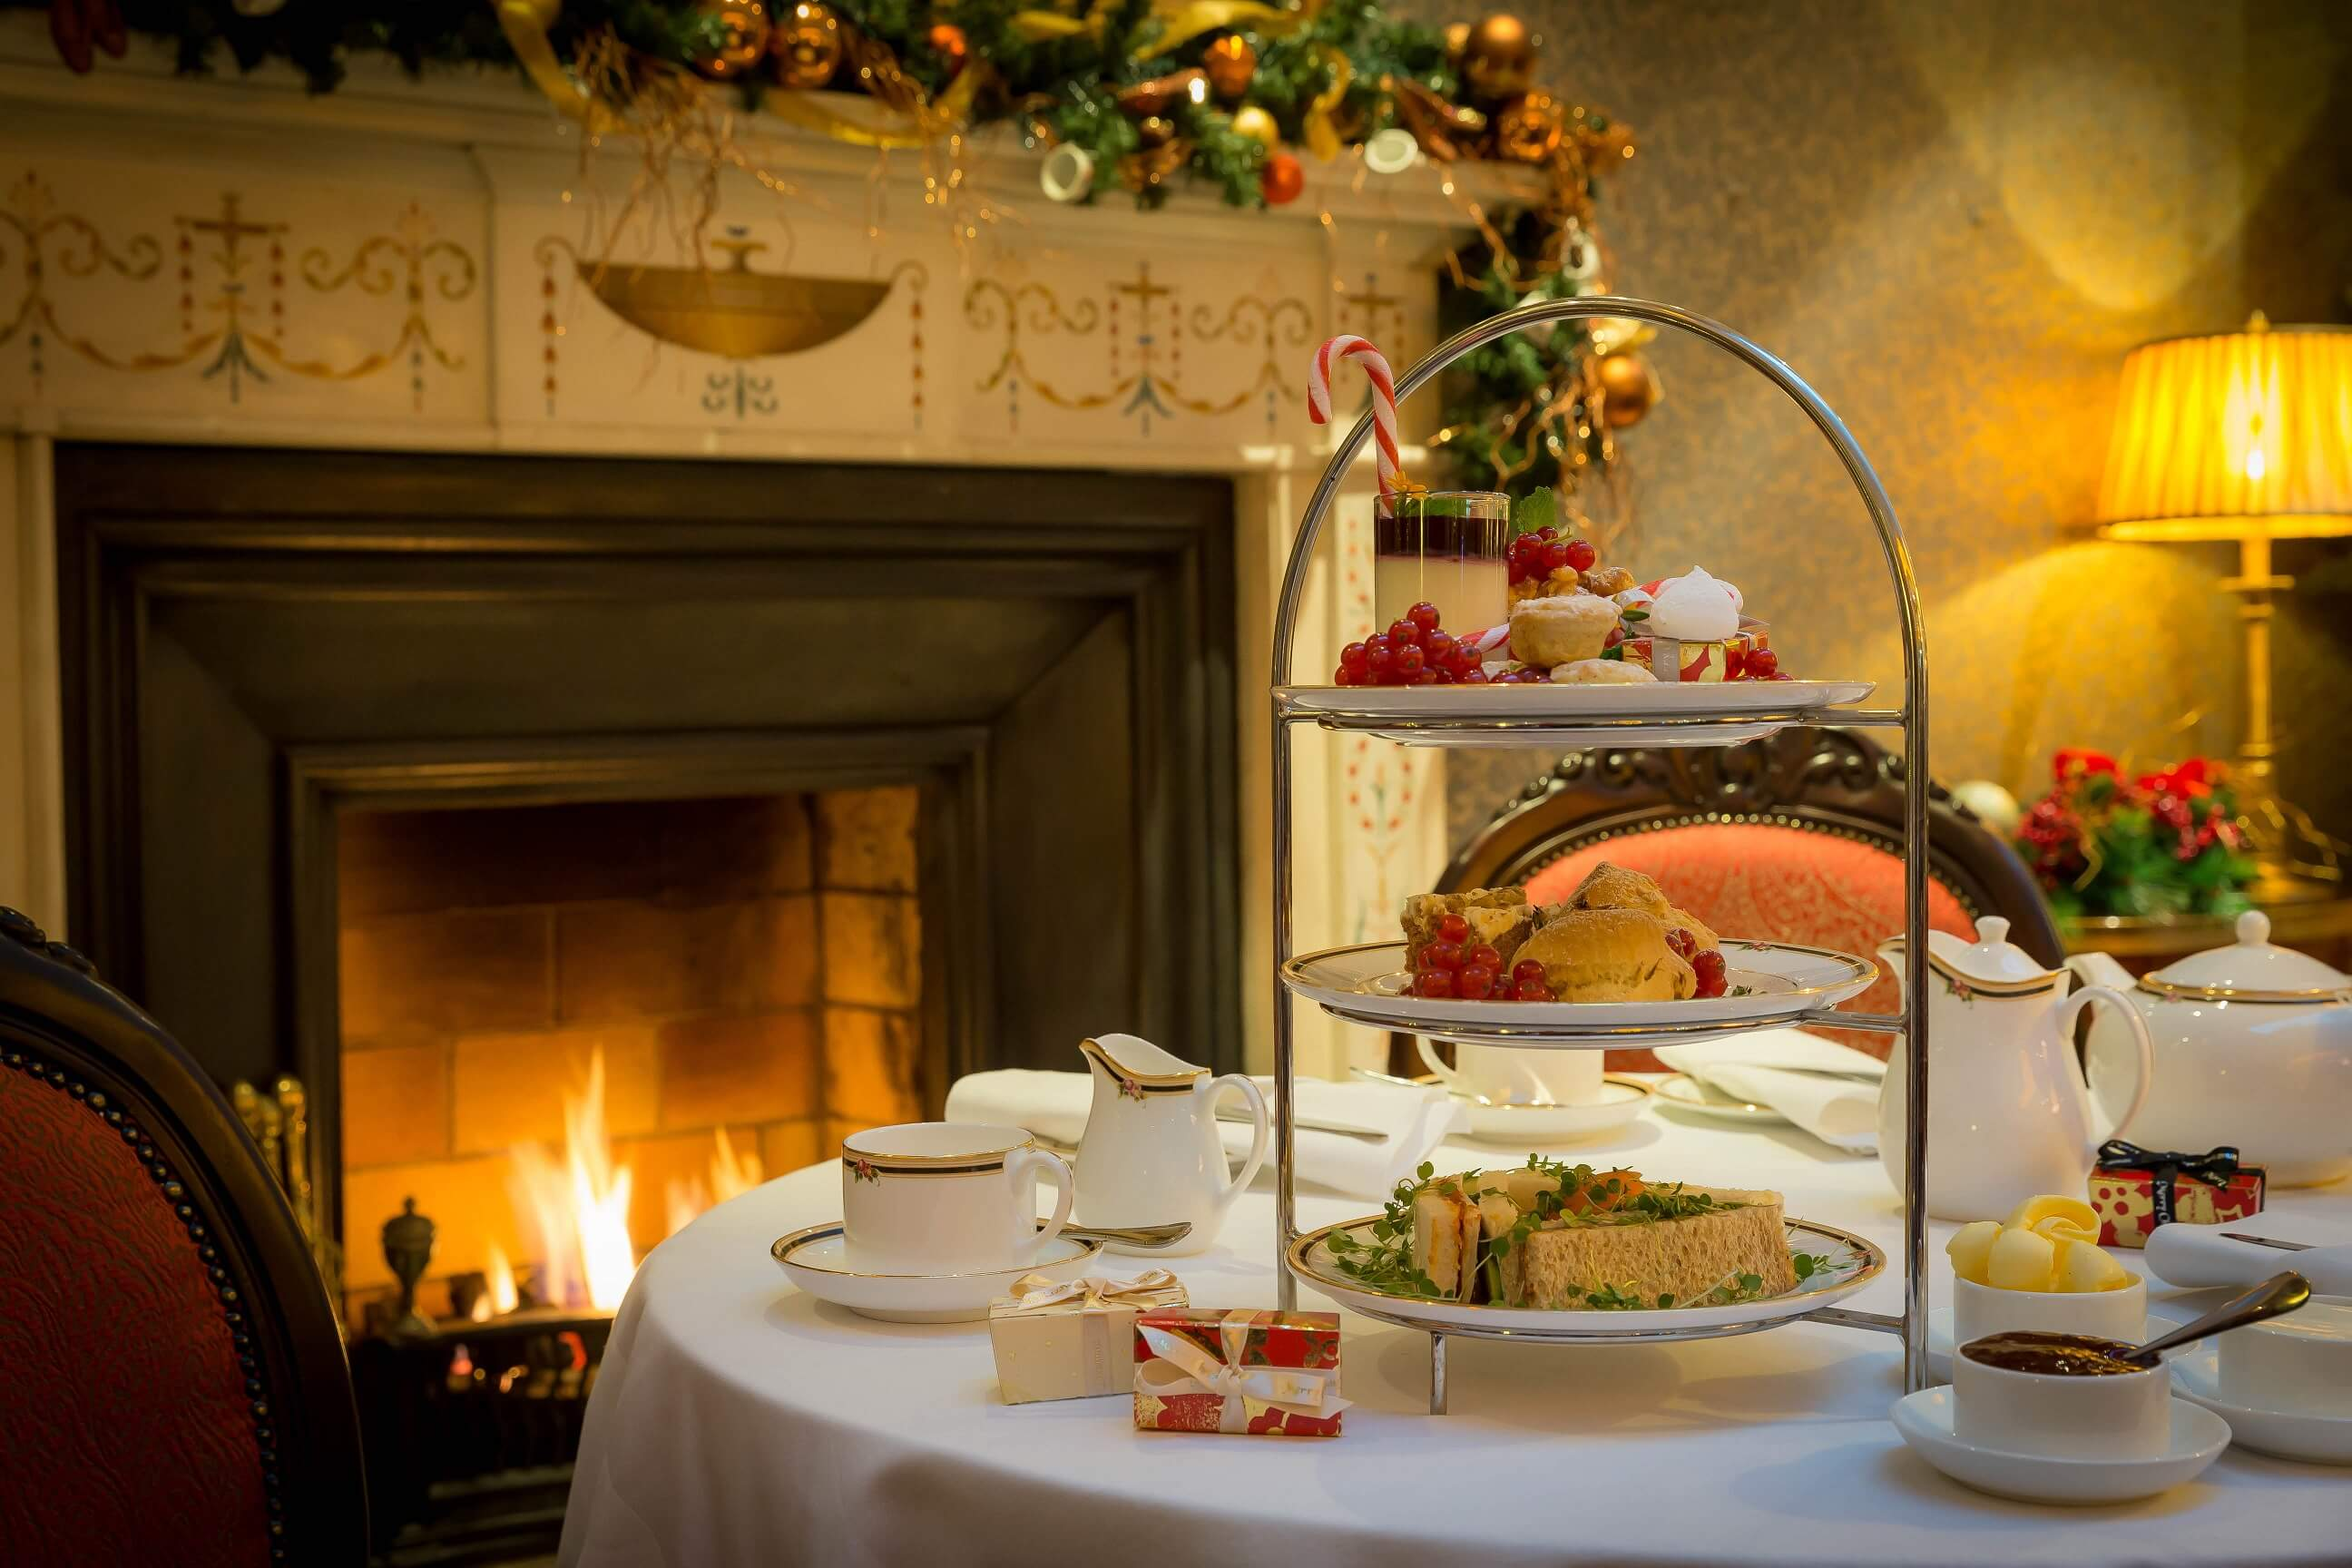 Festive Afternoon Tea in The Atrium Lounge